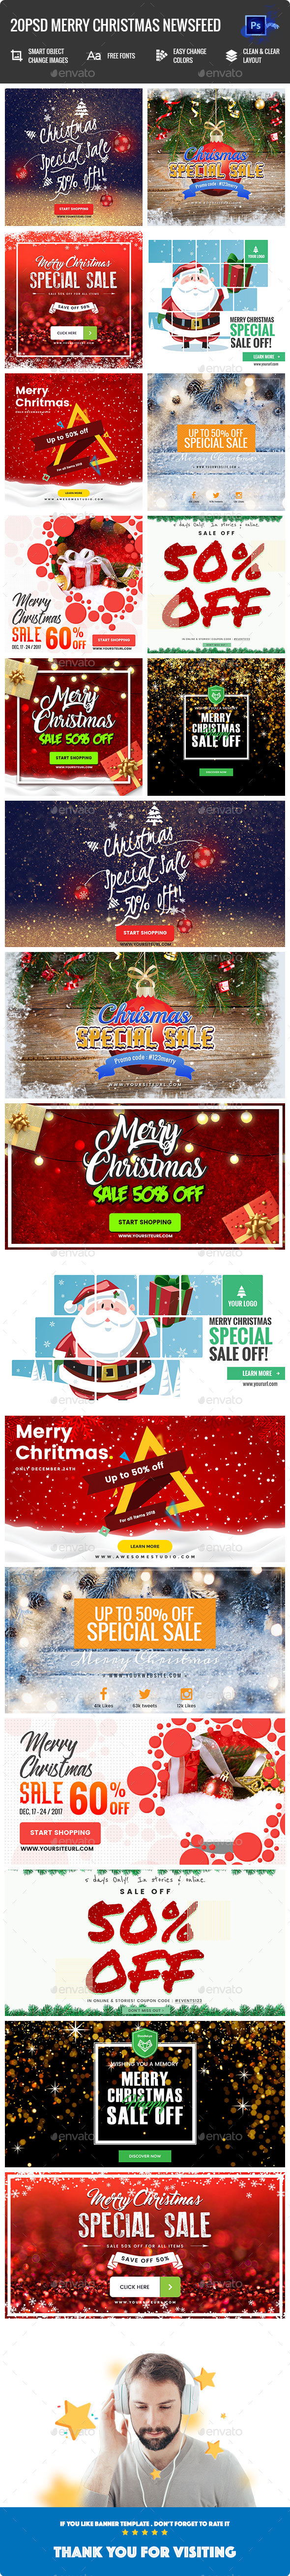 GraphicRiver Merry Christmas NewsFeed Banners Ad 20PSD 21114517